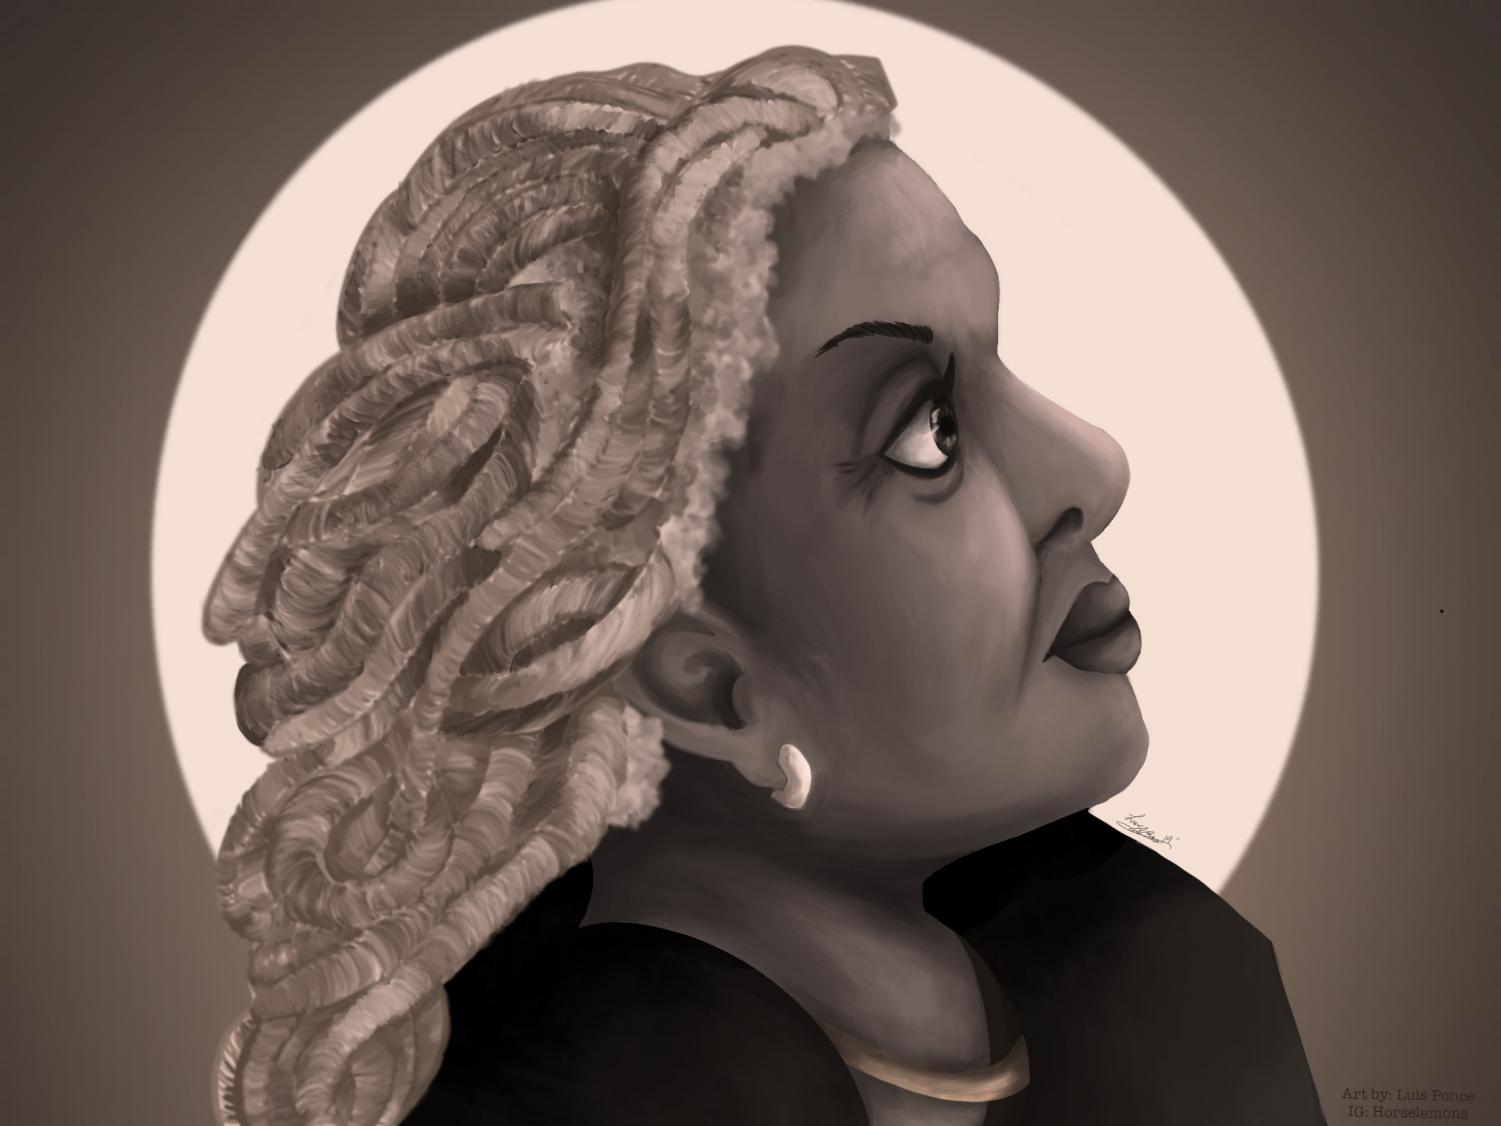 """Critically acclaimed author, Toni Morrison passed away at 88 and left a legacy full of incredible works that have attracted audiences from across racial boundaries. """"If there is a book that you want to read, but it hasn't been written yet, you must be the one to write it,"""" said Morrison."""